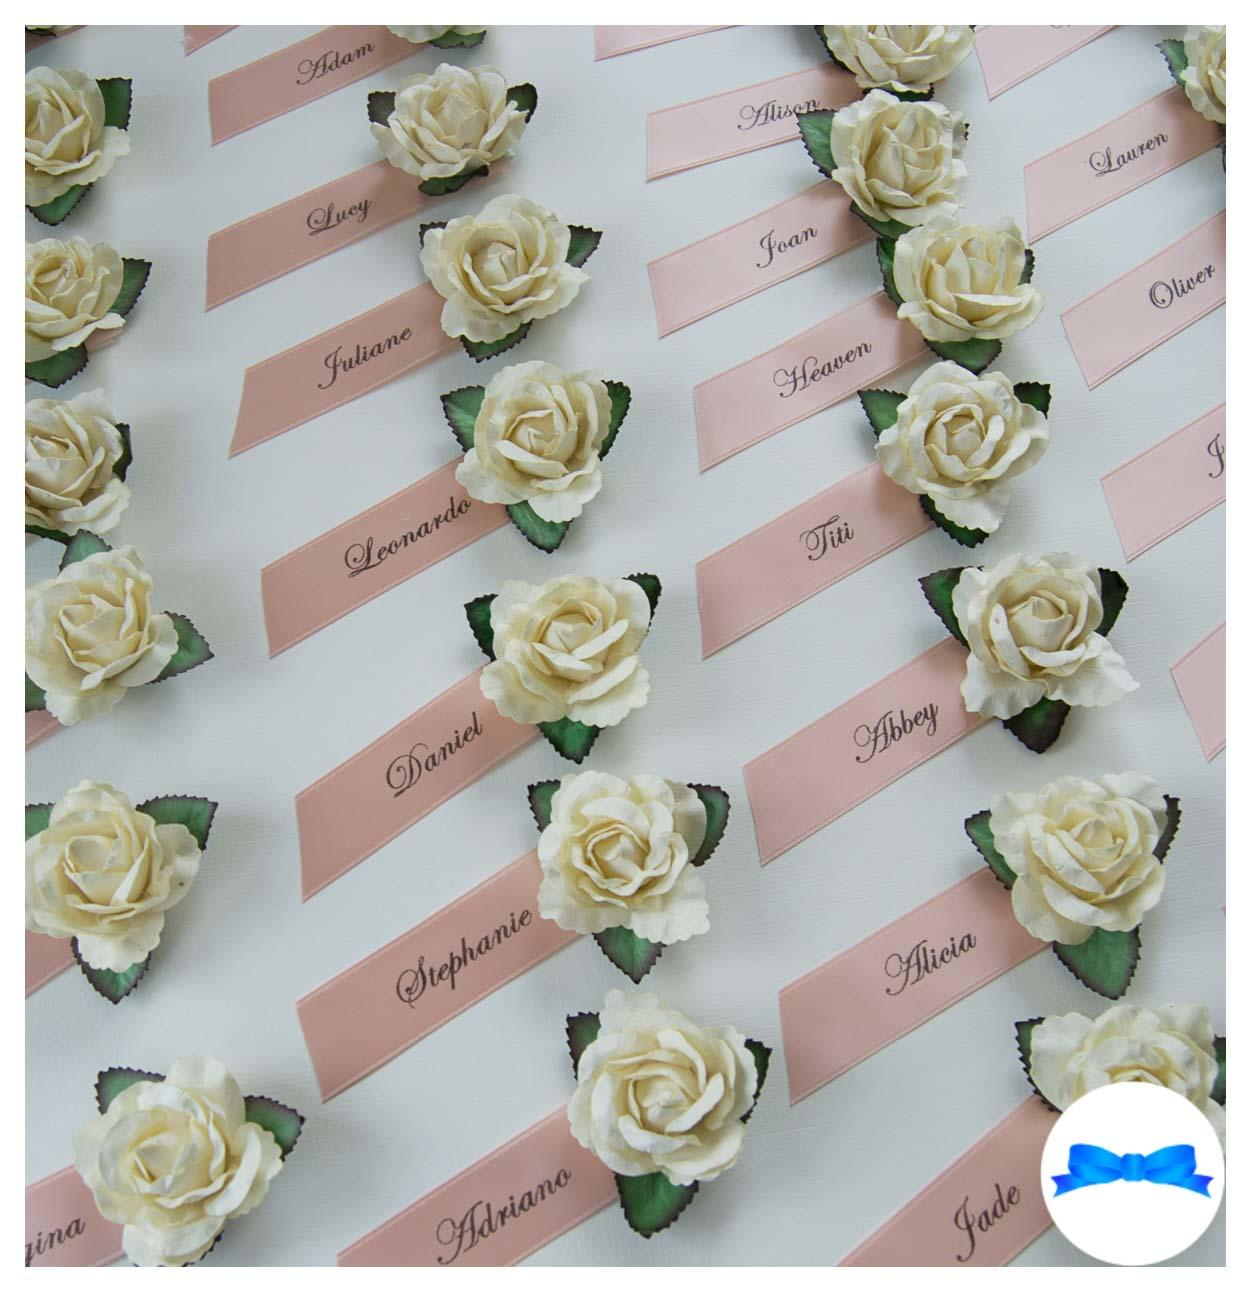 Personalised guest name roses